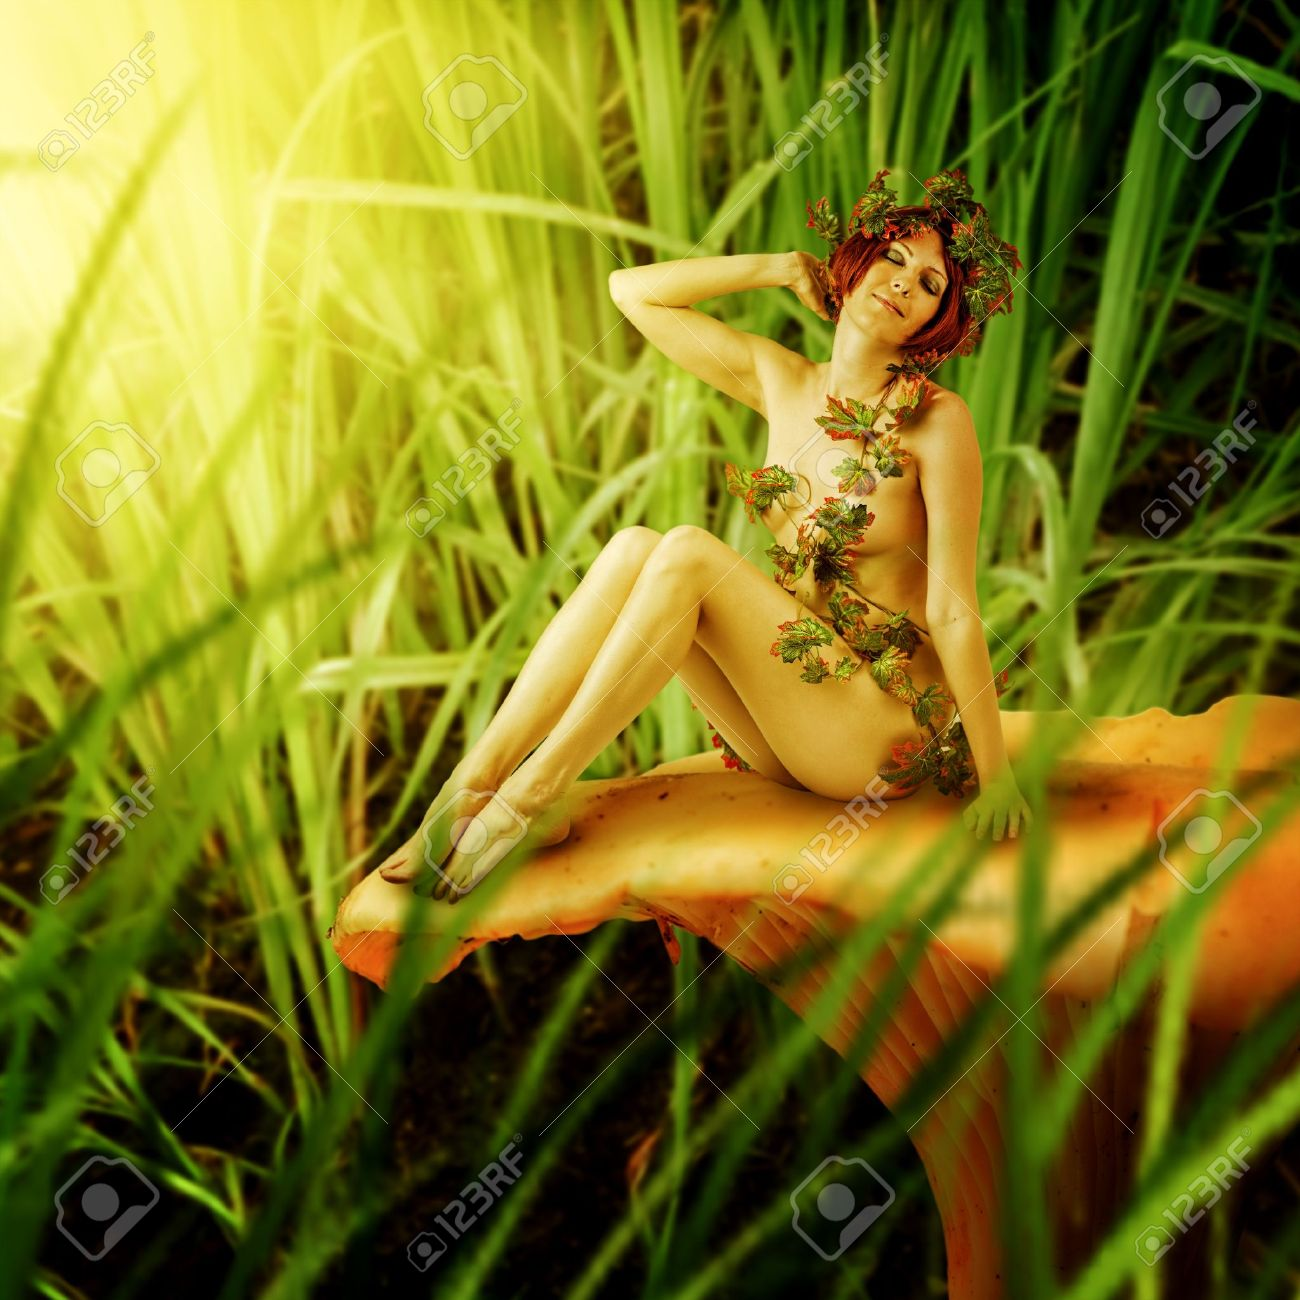 Young woman - Forest nymph sitting on chanterelle mushroom. Stock Photo - 21203136